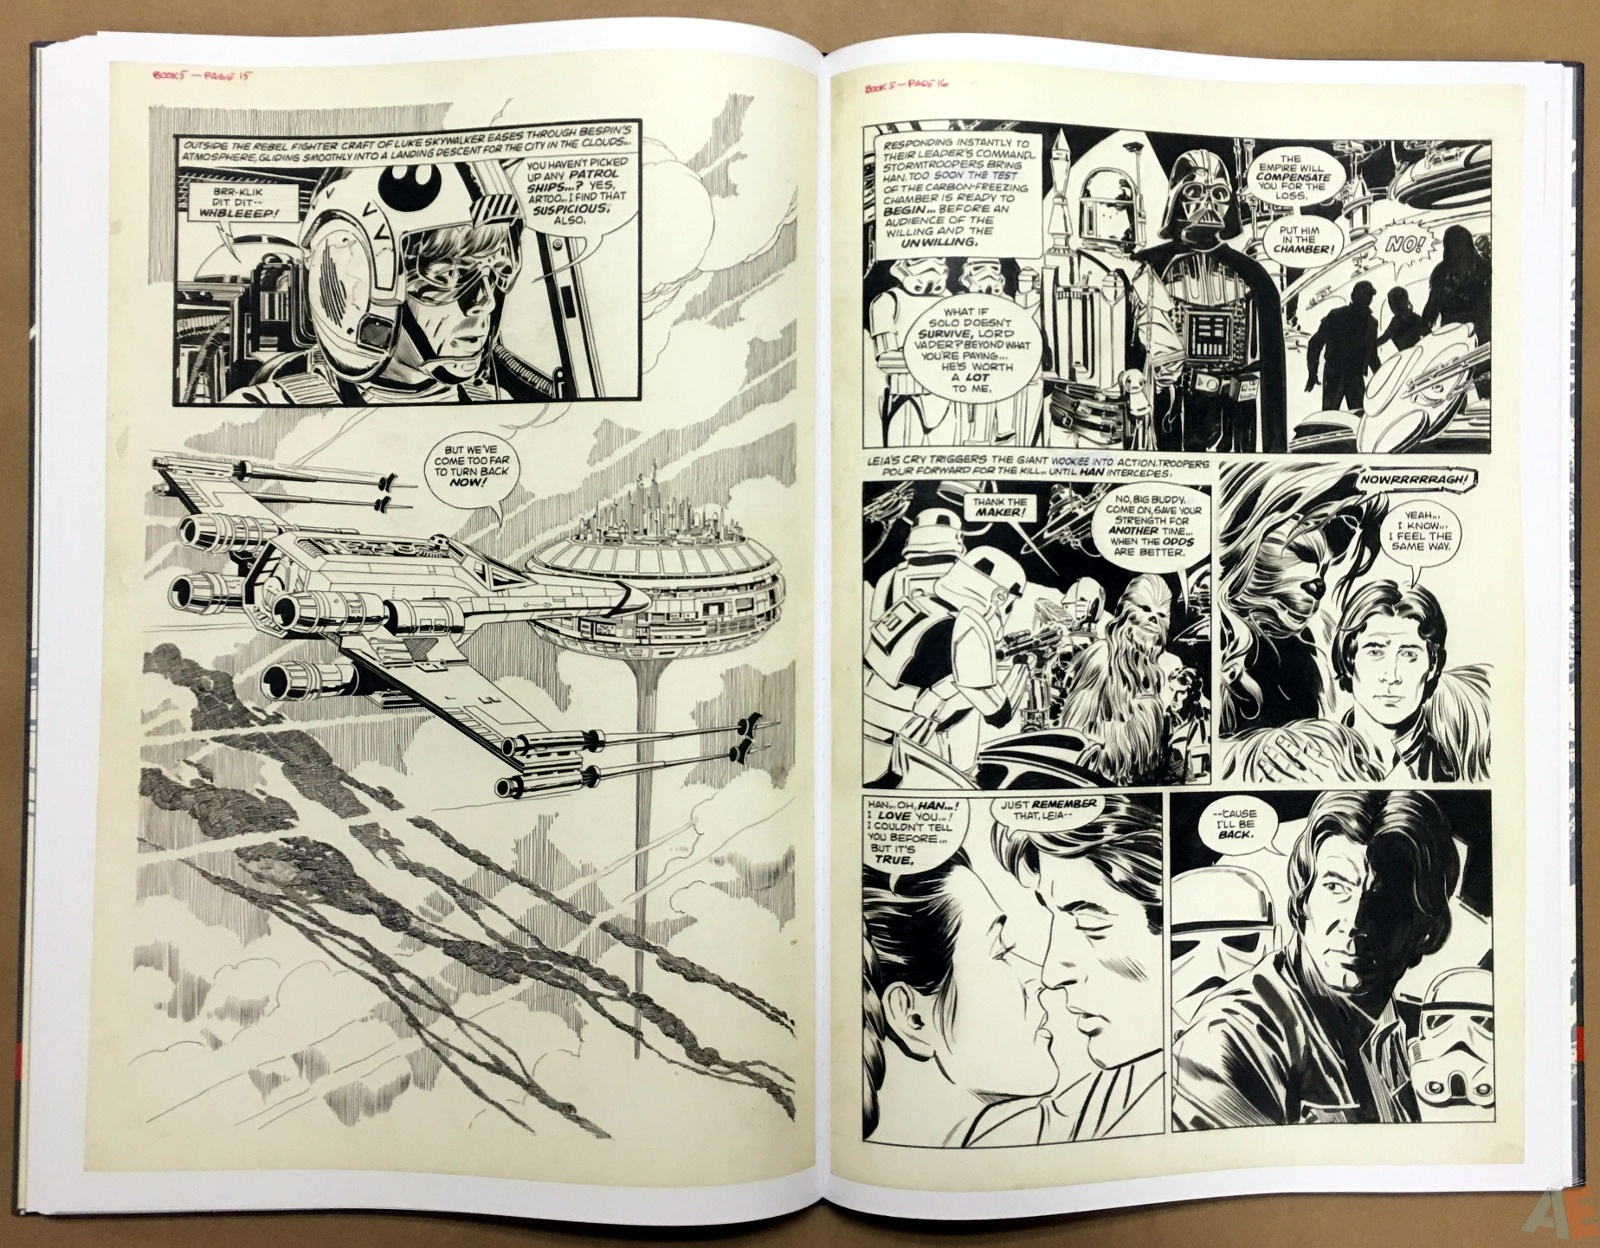 Al Williamson's Star Wars: The Empire Strikes Back Artist's Edition 30